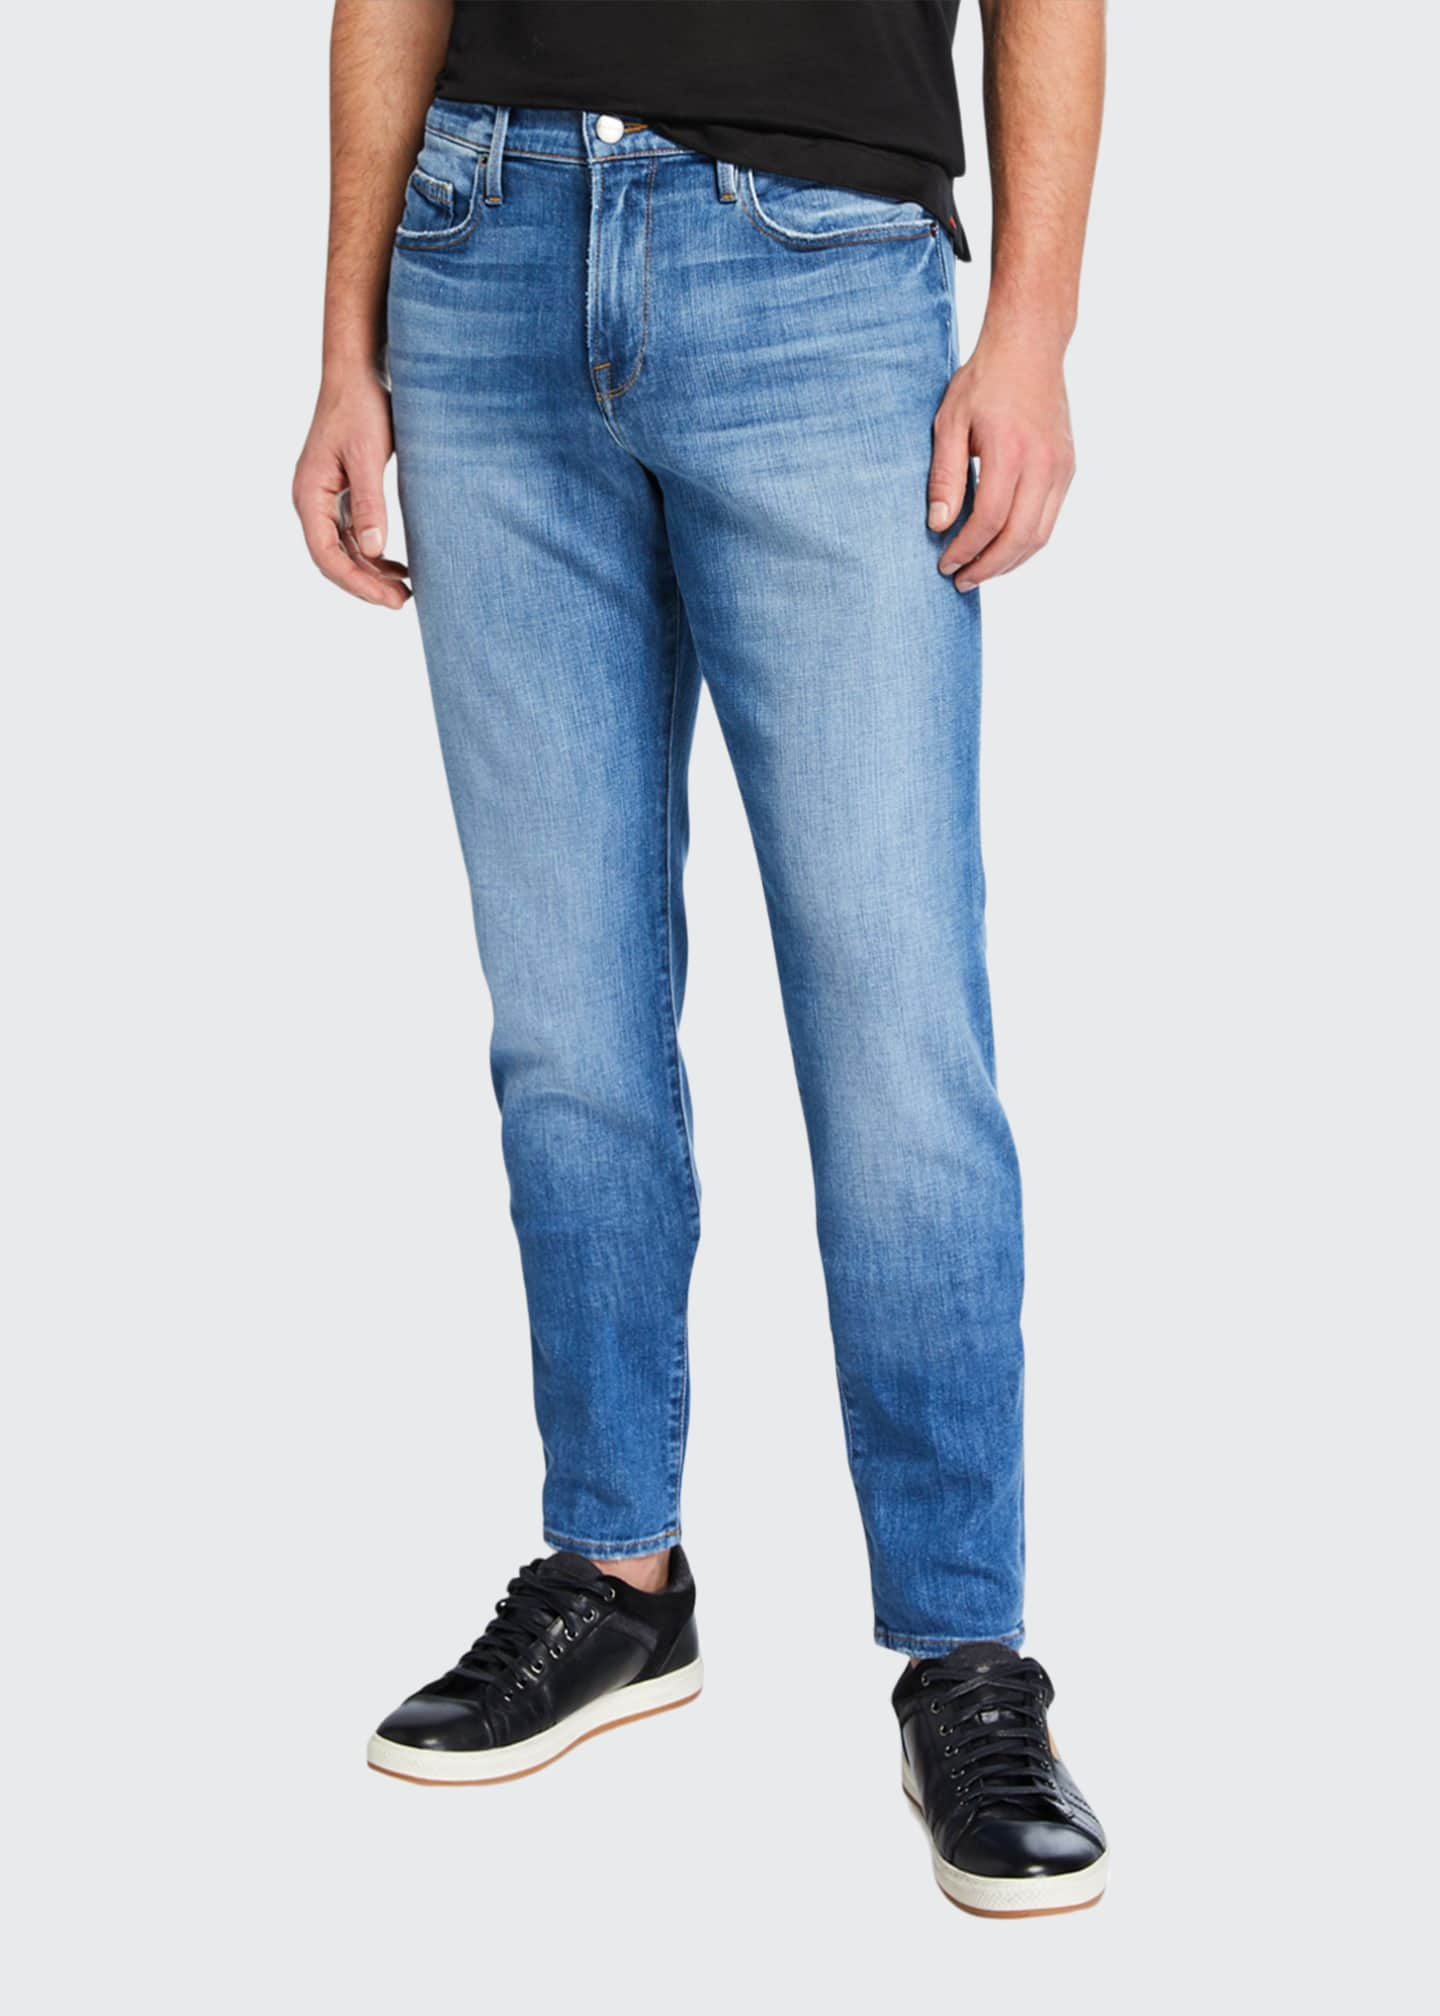 FRAME Men's L'Homme Athletic Jeans - 33